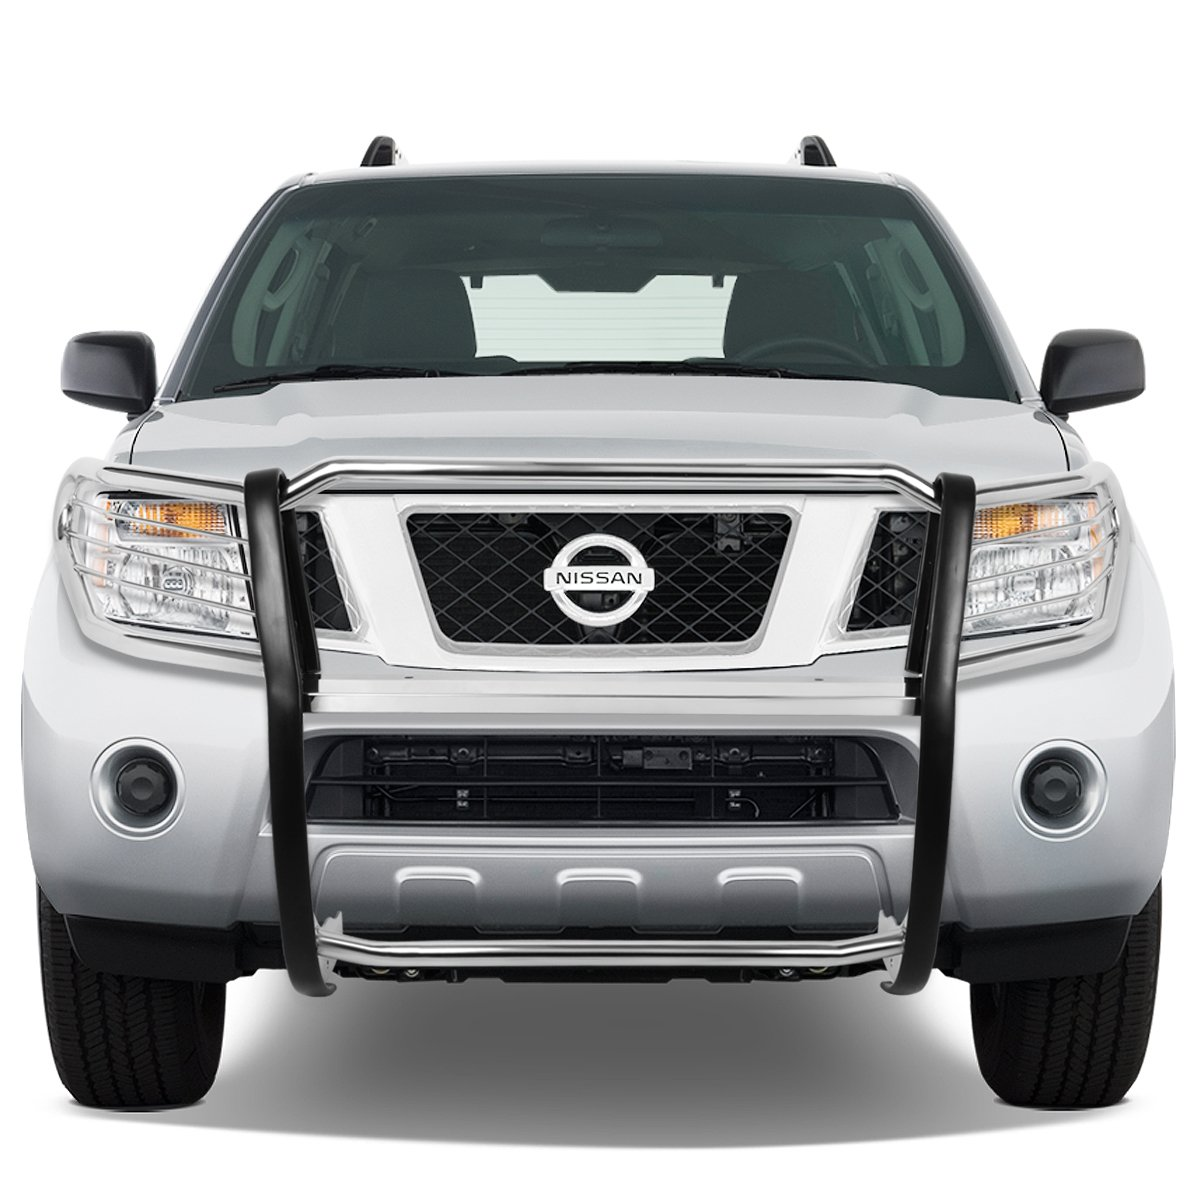 For Nissan Pathfinder R51 Front Bumper Protector Brush Grille Guard Chrome